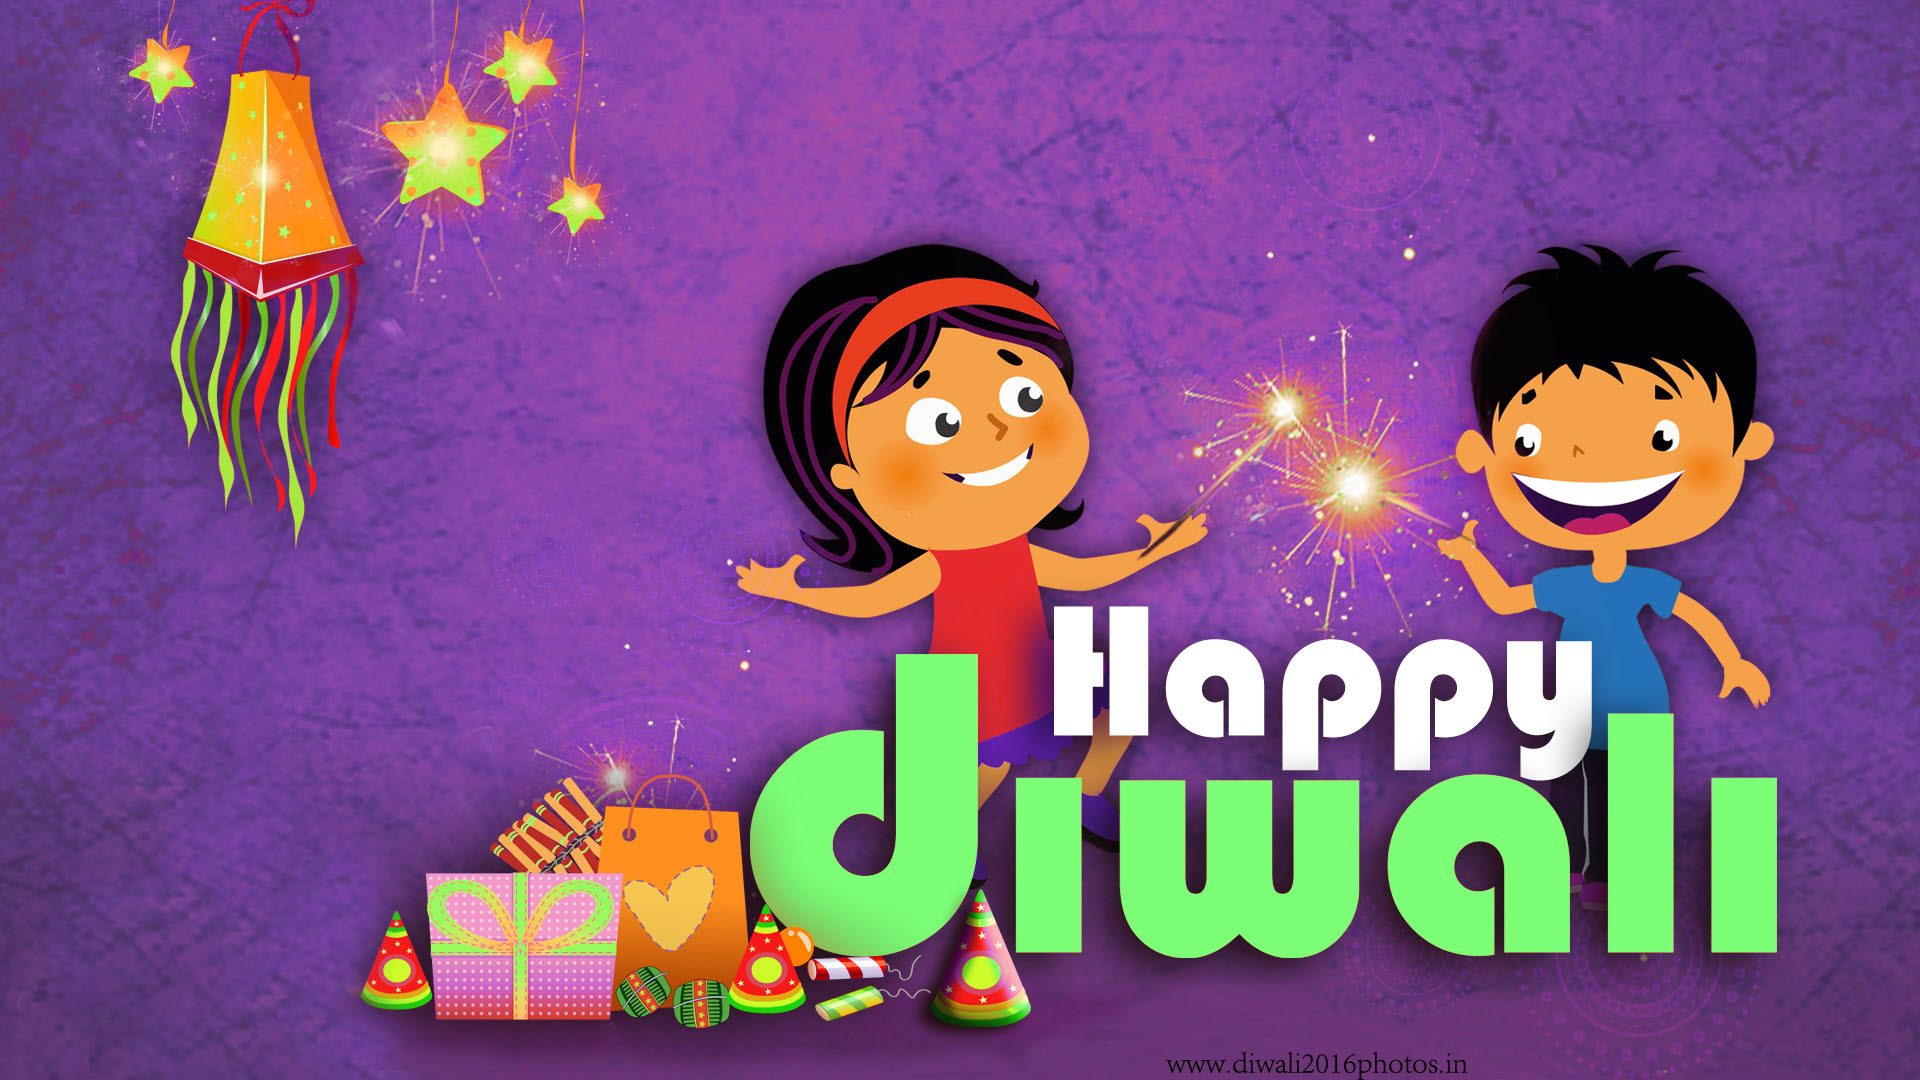 Happy Diwali 2016 Hd Wallpapers Volganga